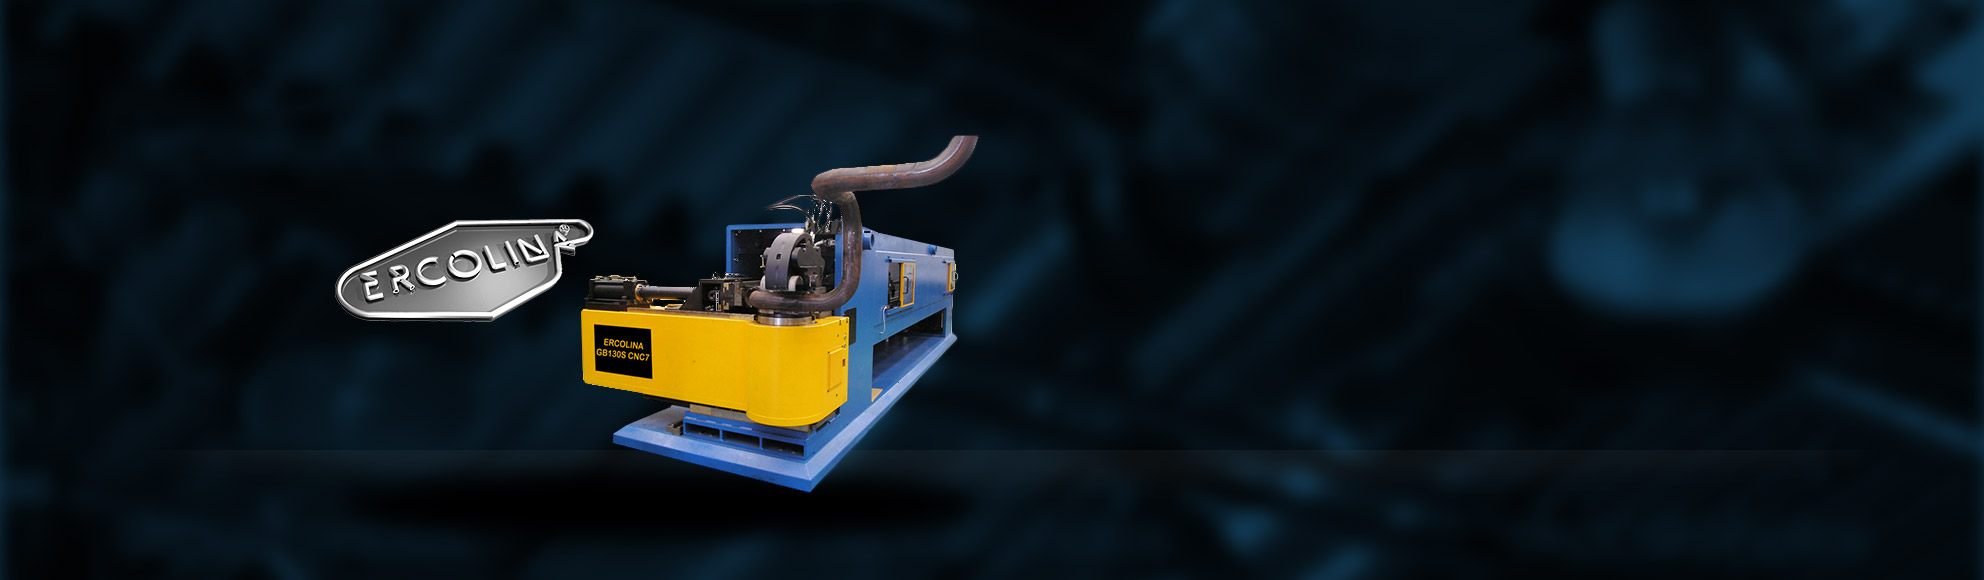 ERCOLINA CNC Giga Mandrel Benders    ERCOLINA's Giga Bender series of CNC mandrel benders incorporates the patented KST clam shell hydraulic clamping system. This system eliminates tube slippage and reduces the bending head size. The ERCOLINA Giga bender range is ideal for industrial bending of tube, pipe, square and rectangular profiles to centre line radius as small as 1.5 x diameter.